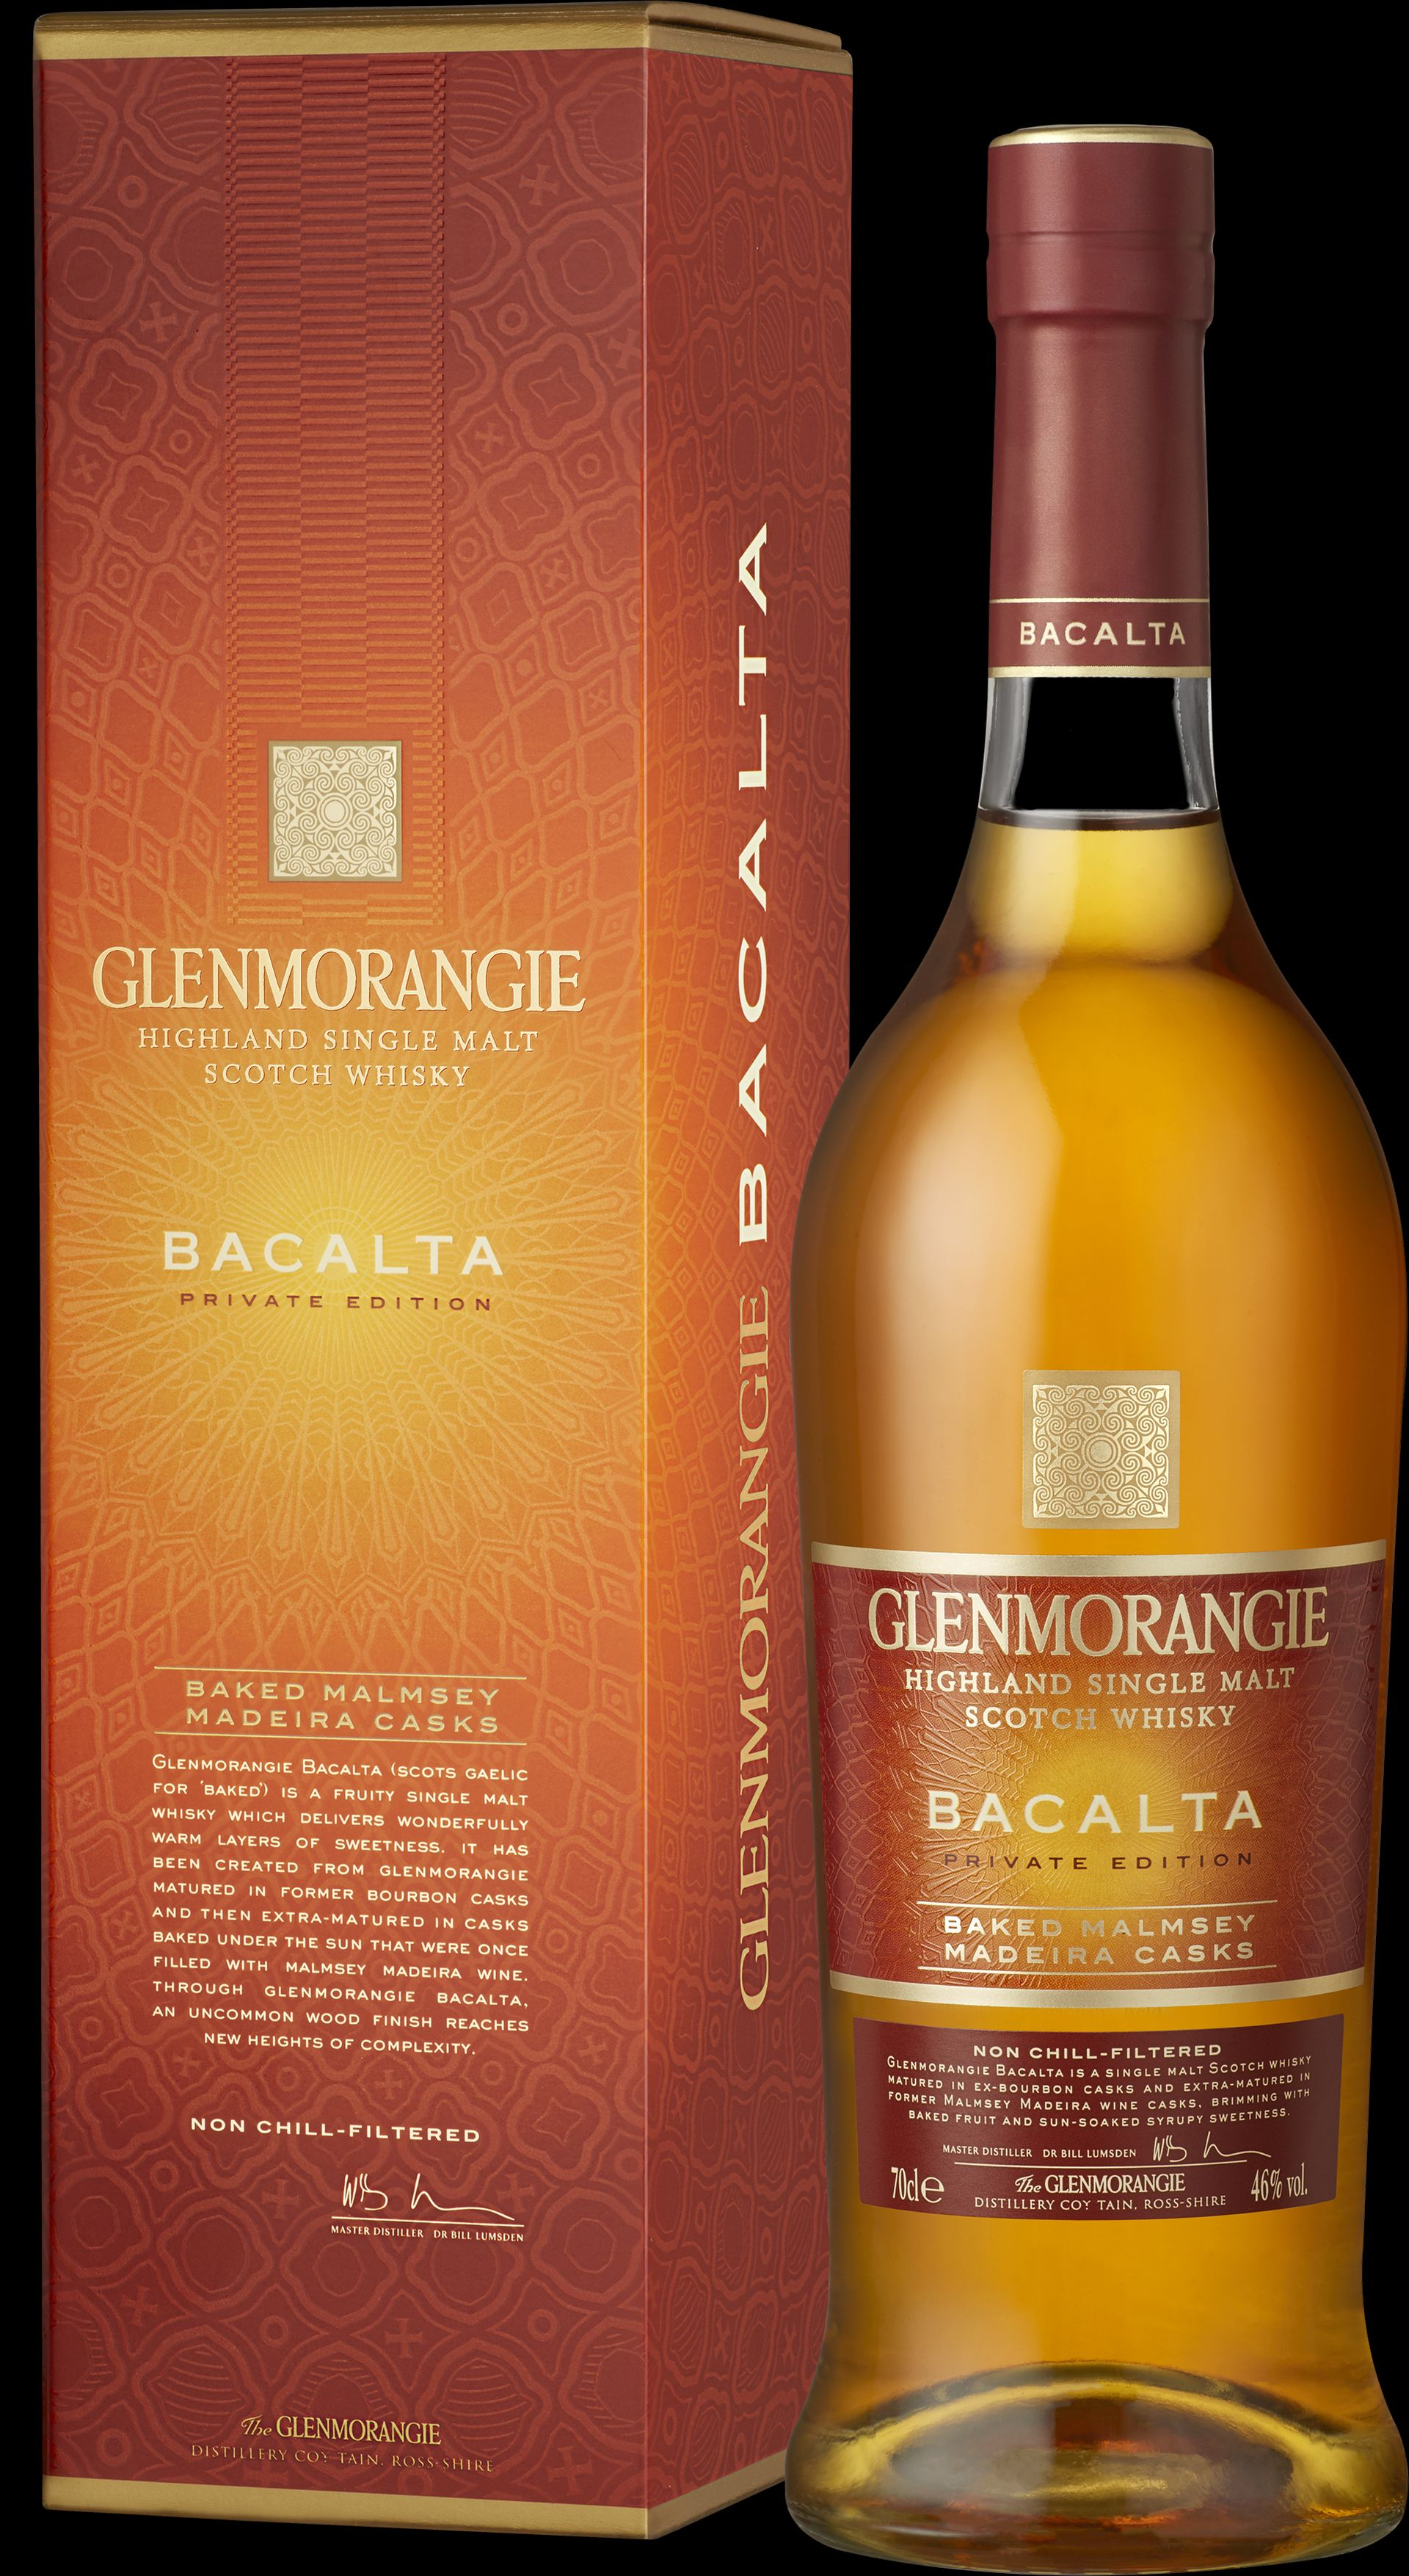 Glenmorangie Bacalta Private Edition Whisky